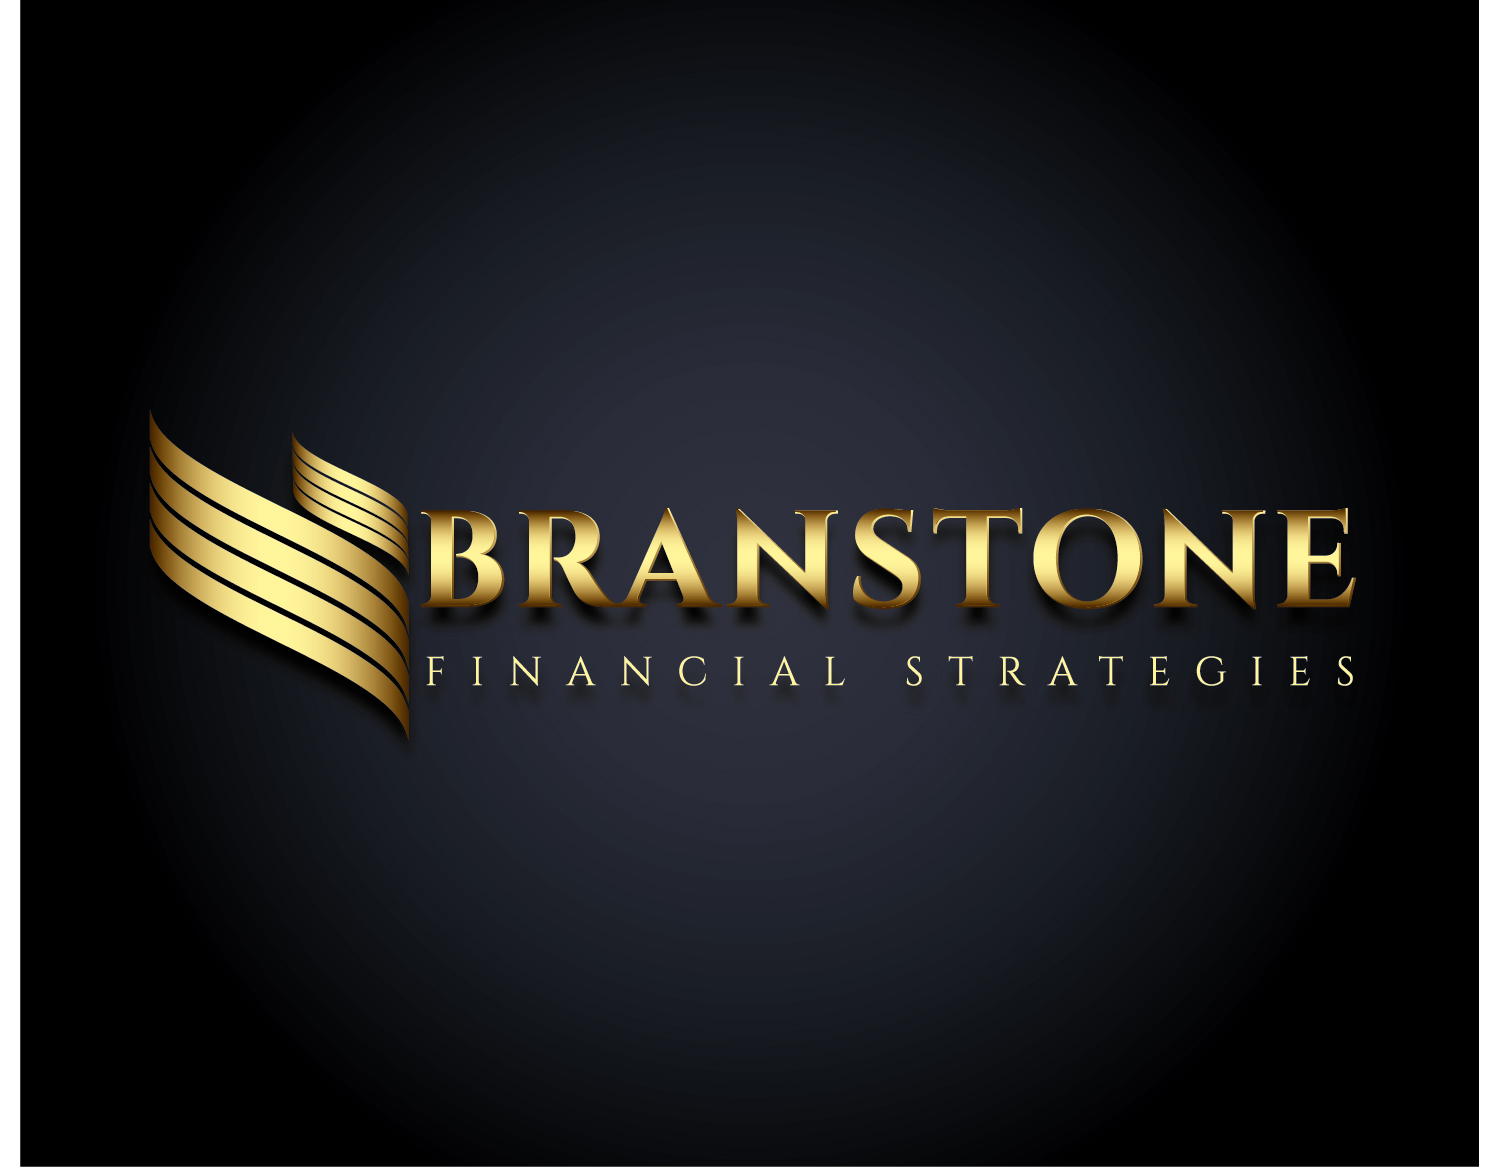 Logo Design by VENTSISLAV KOVACHEV - Entry No. 73 in the Logo Design Contest Inspiring Logo Design for Branstone Financial Strategies.